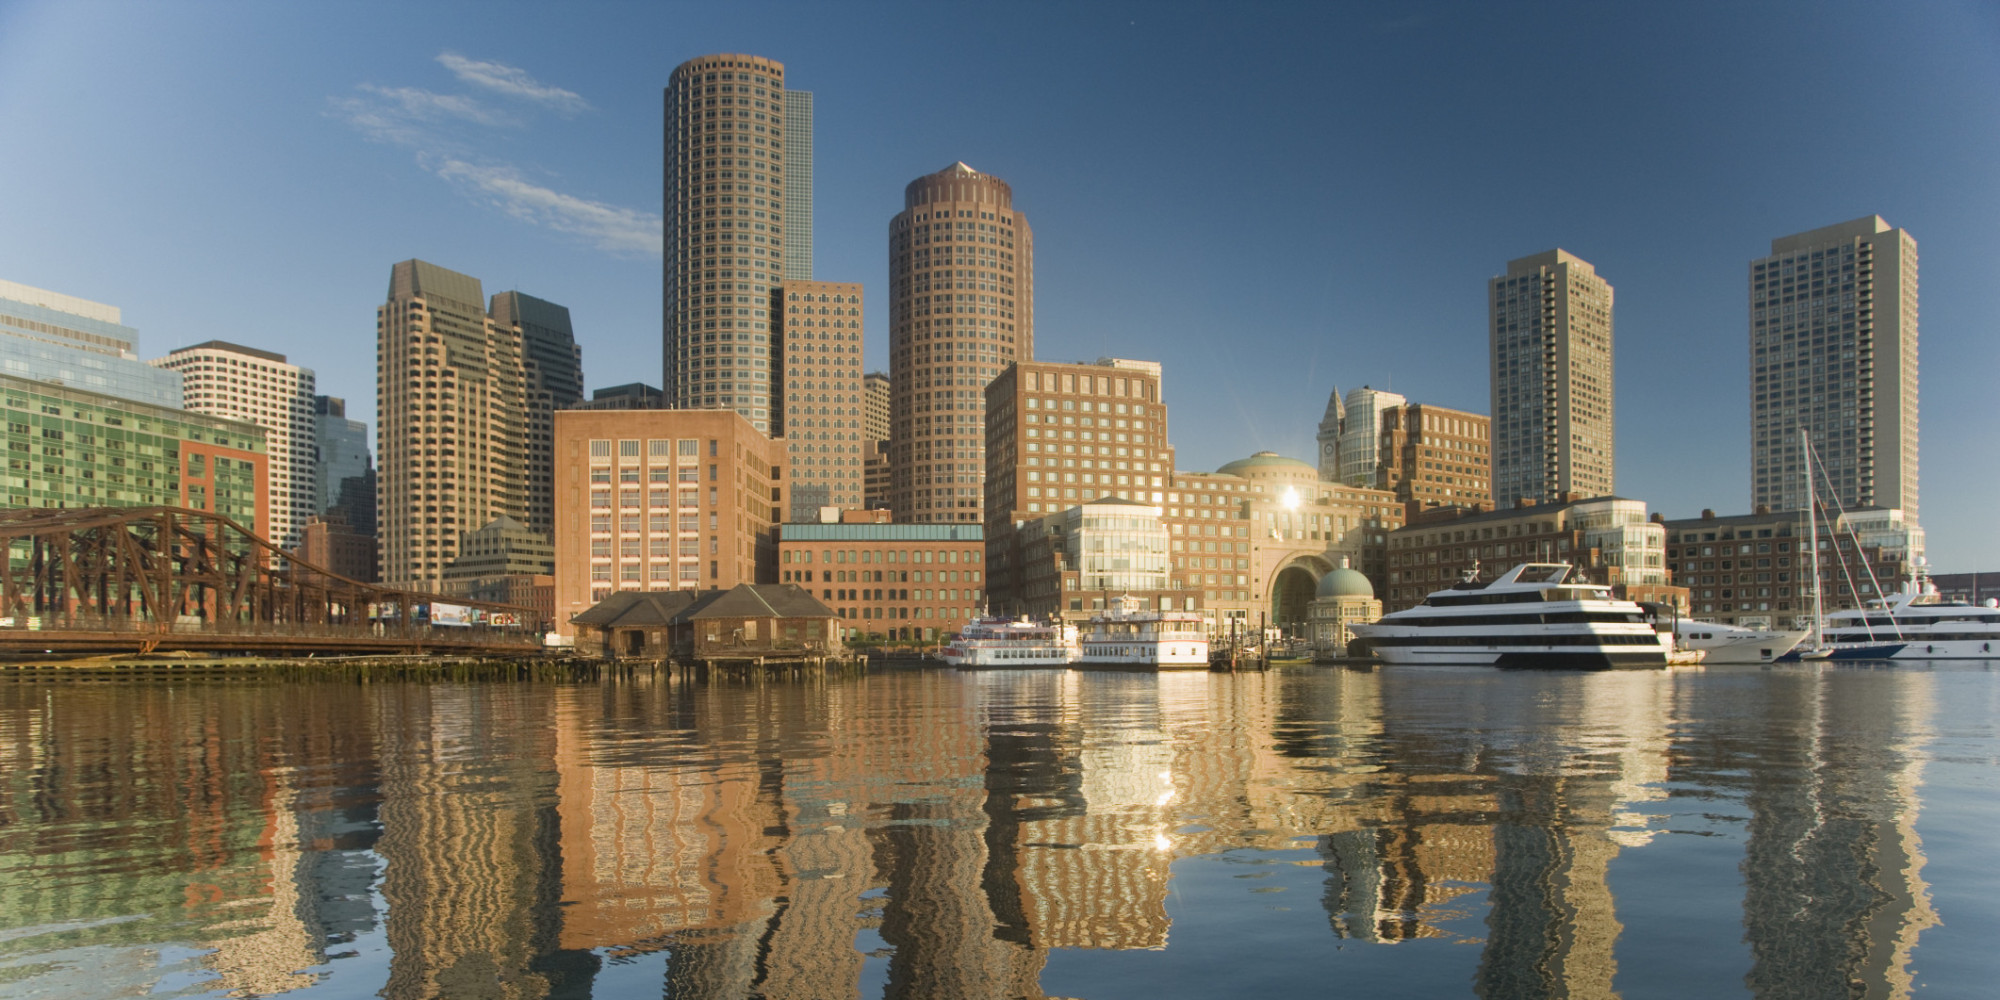 places america live healthiest cities healthy living boston huffpost well